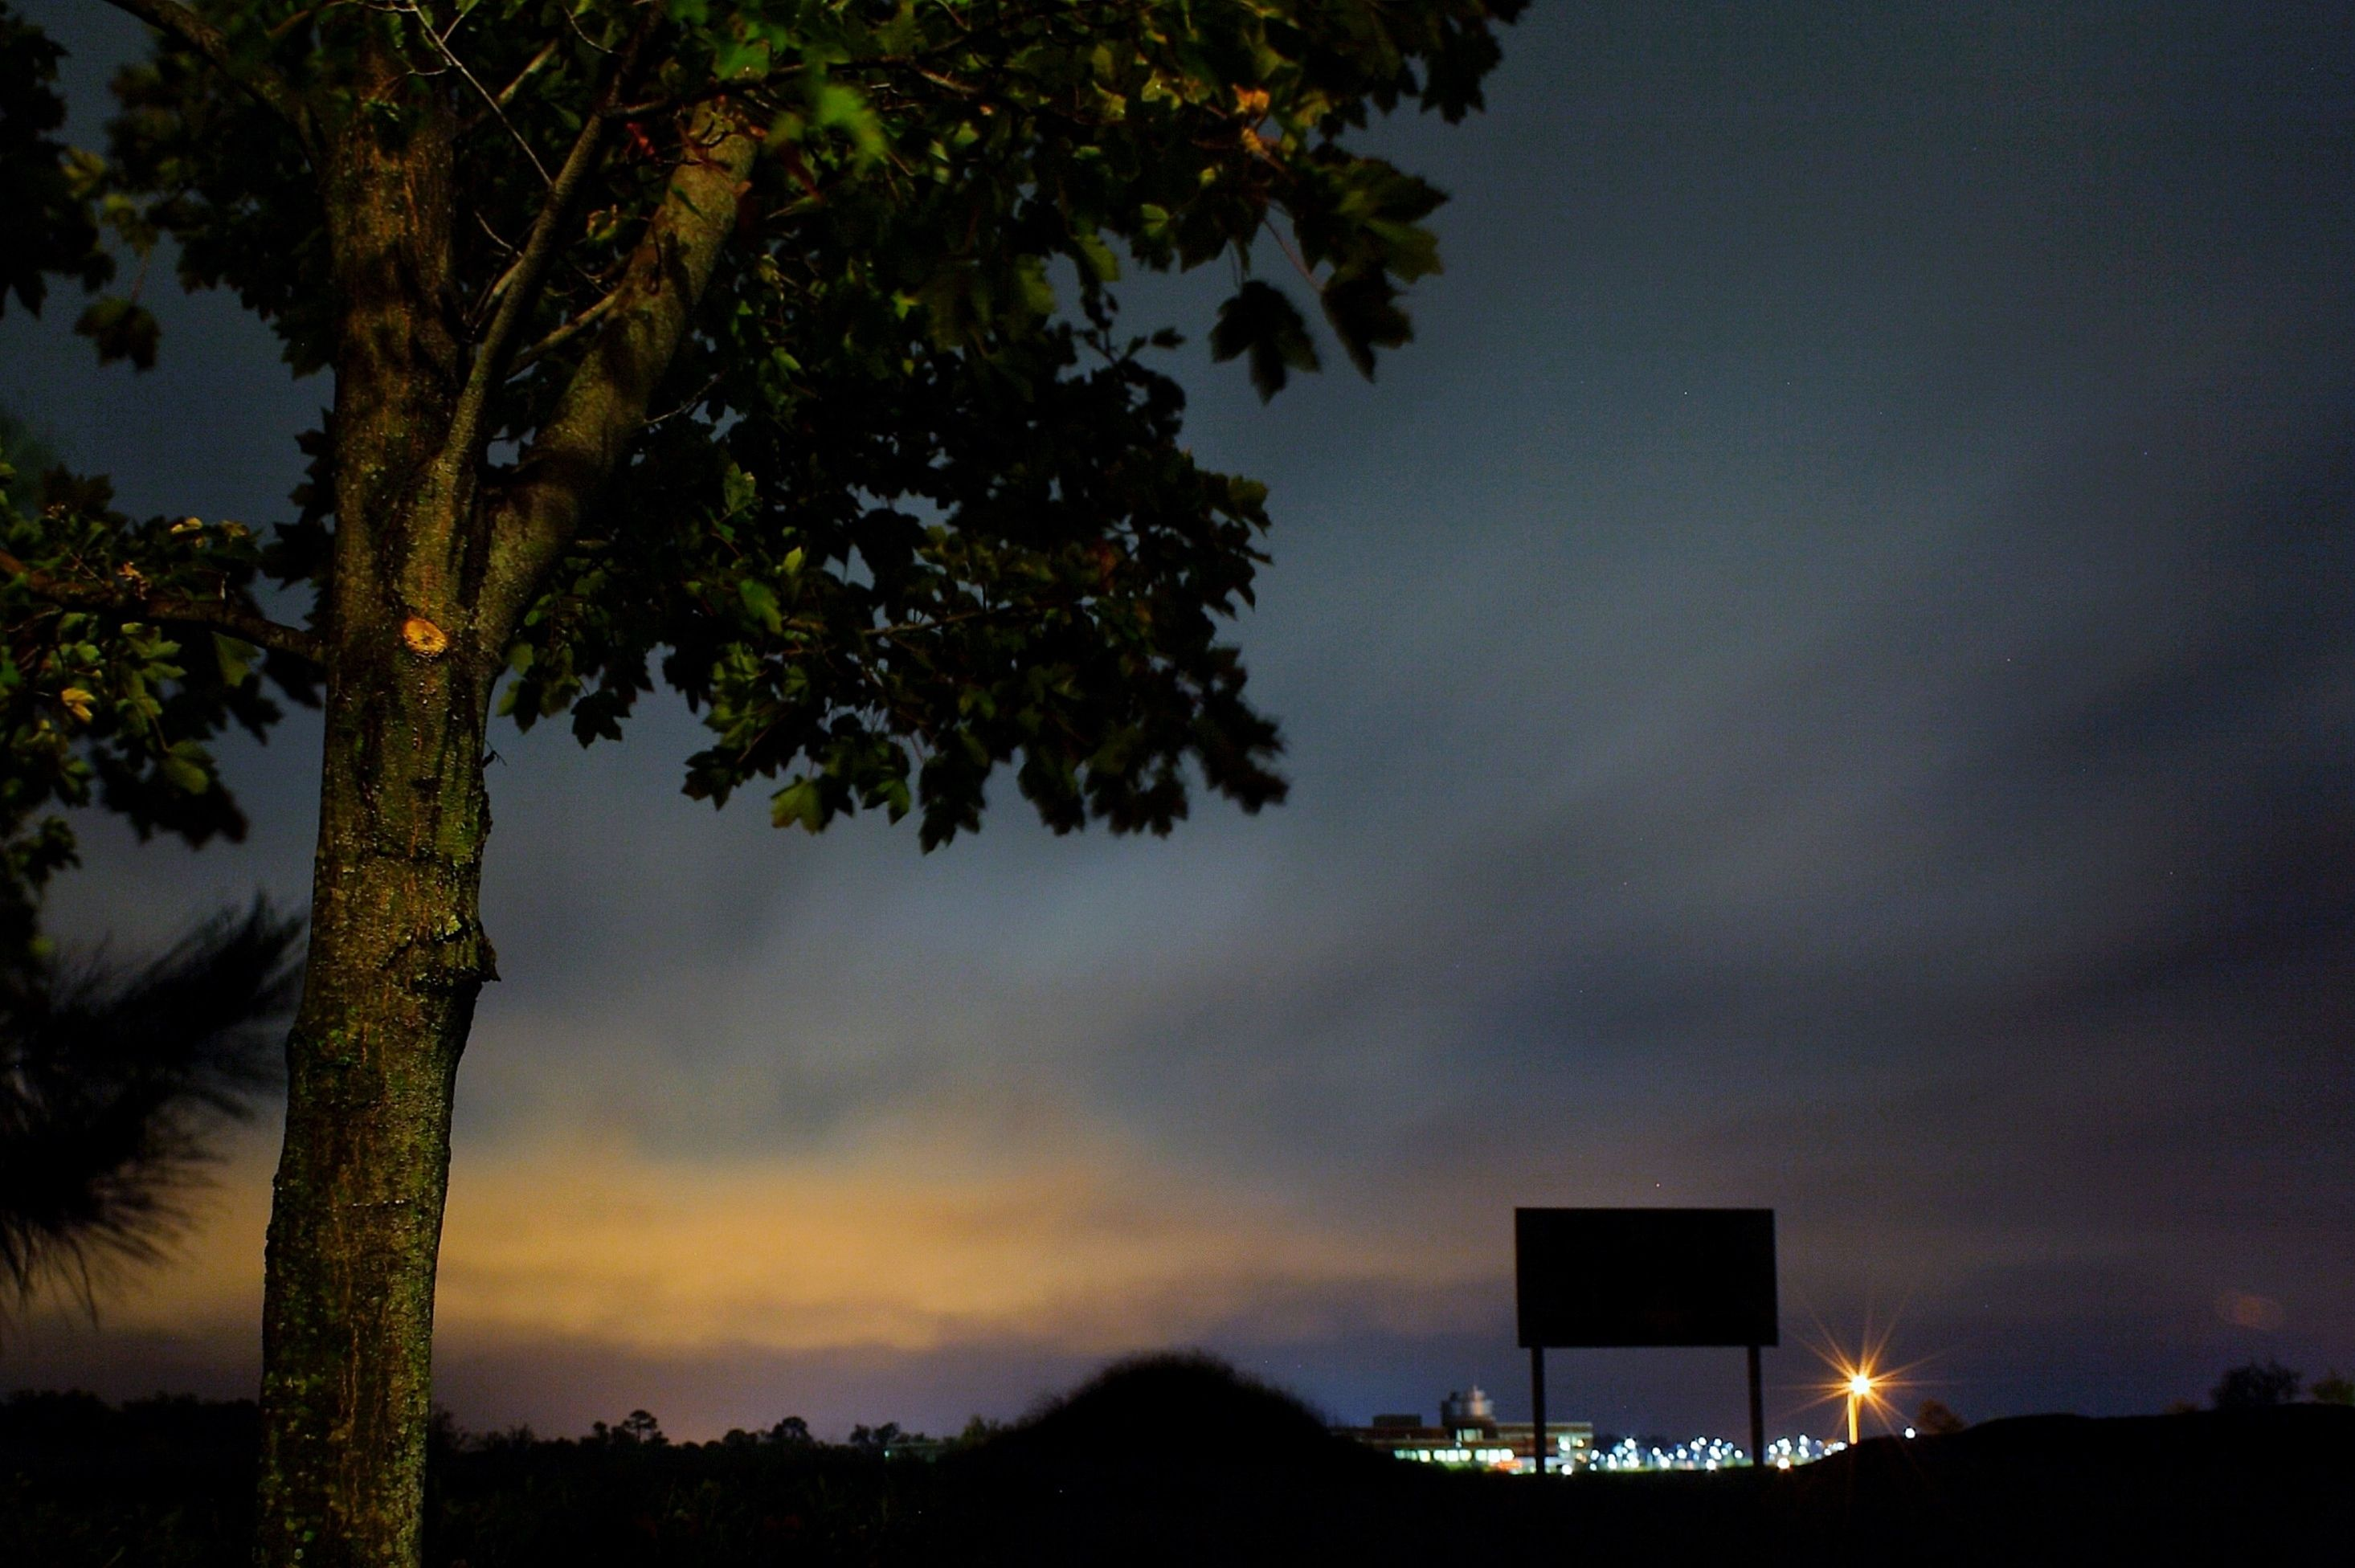 HDR photography / night photography